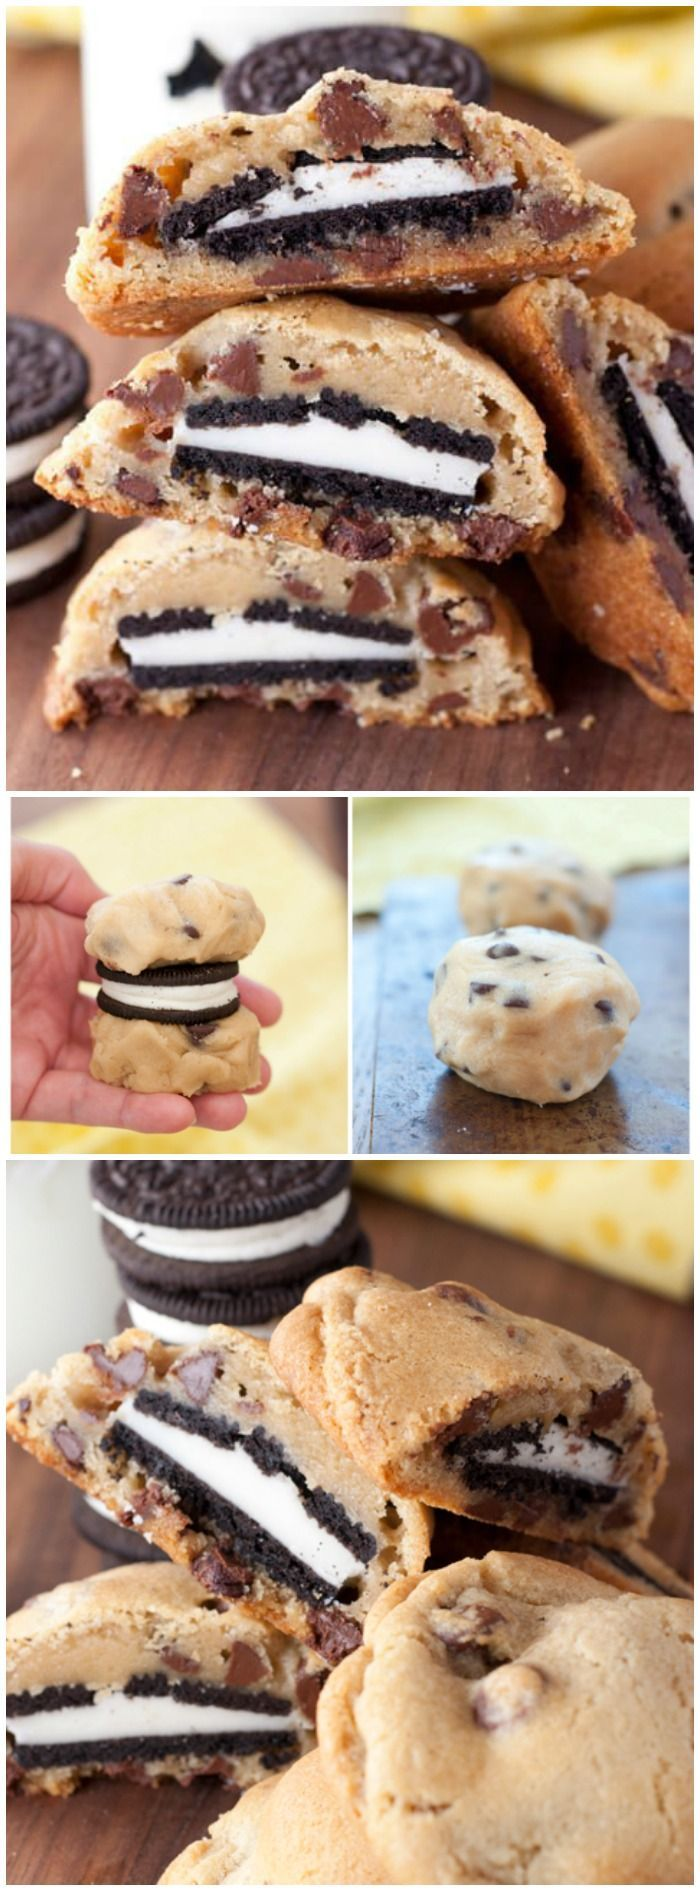 OREO Stuffed Chocolate Chip Cookies Recipe || Featured on http://www.thebestblogrecipes.com